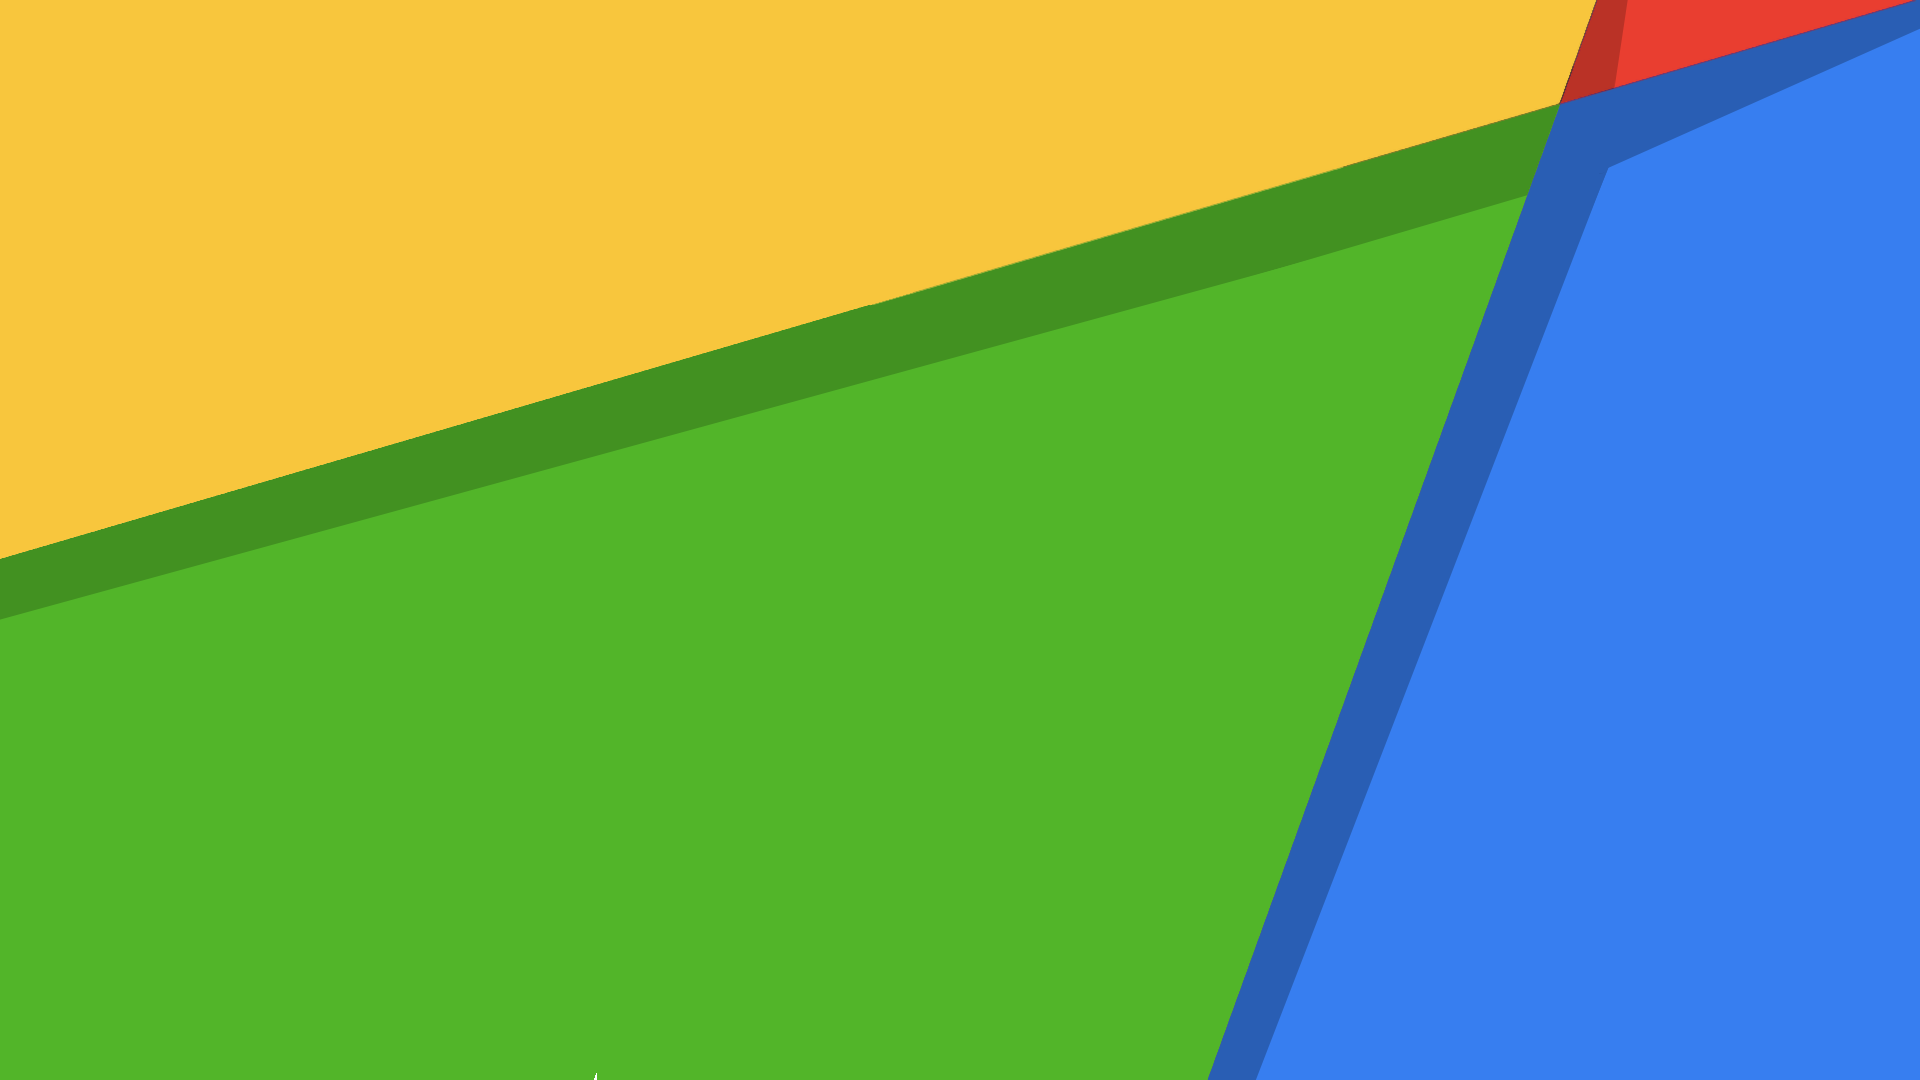 [MinFlat] Default Android 4.3 Wallpaper (HD)